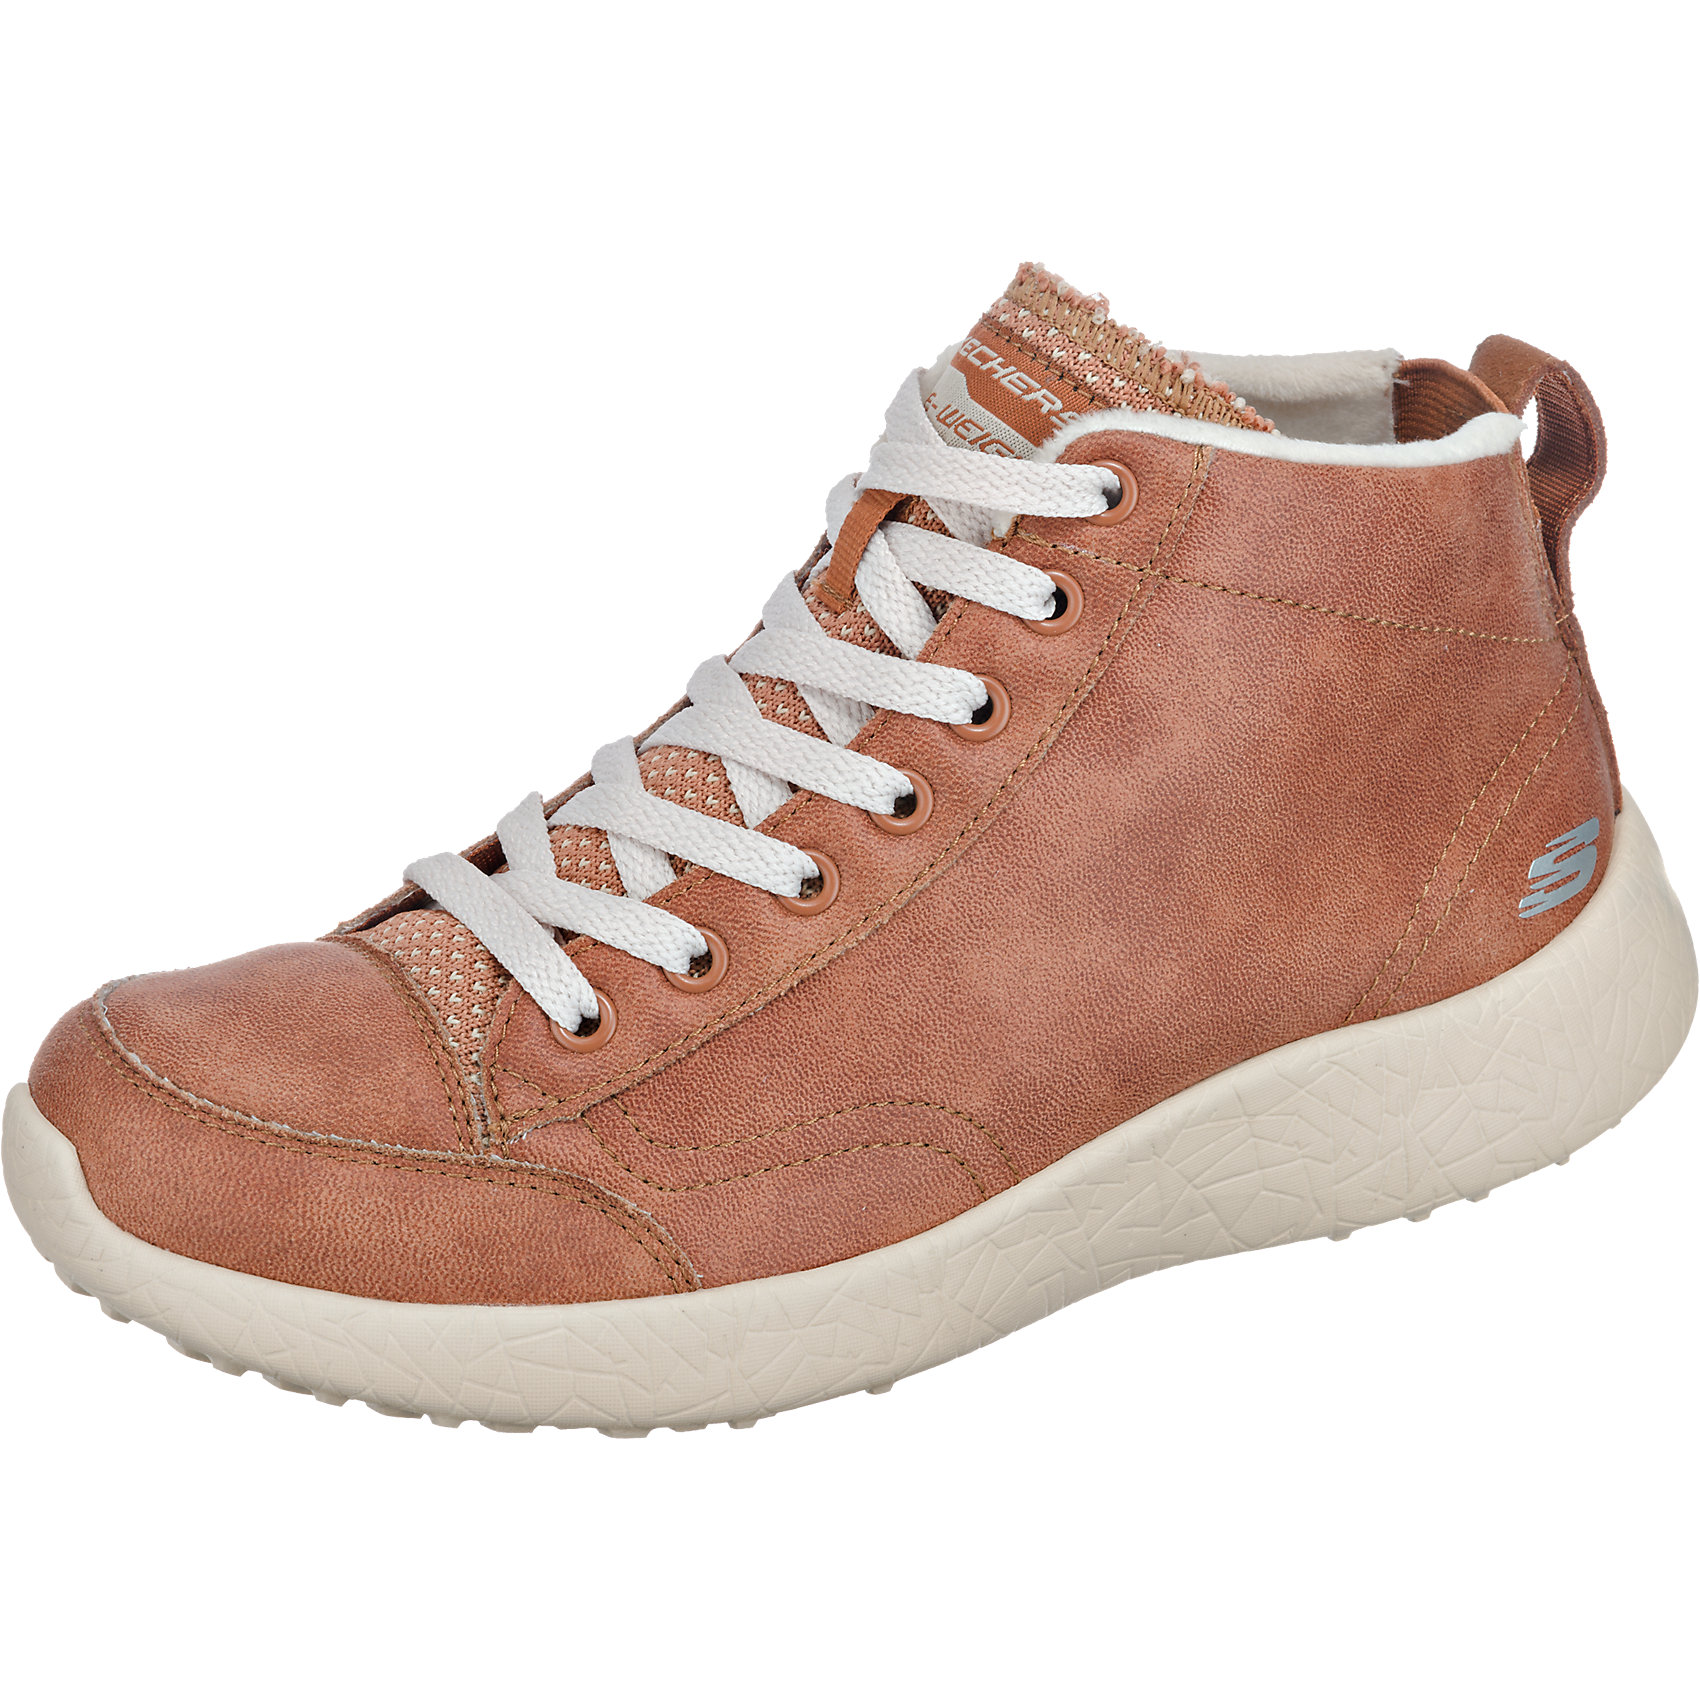 Neu SKECHERS Burst Carried Away Sneakers 6836741 für Damen V5UyD